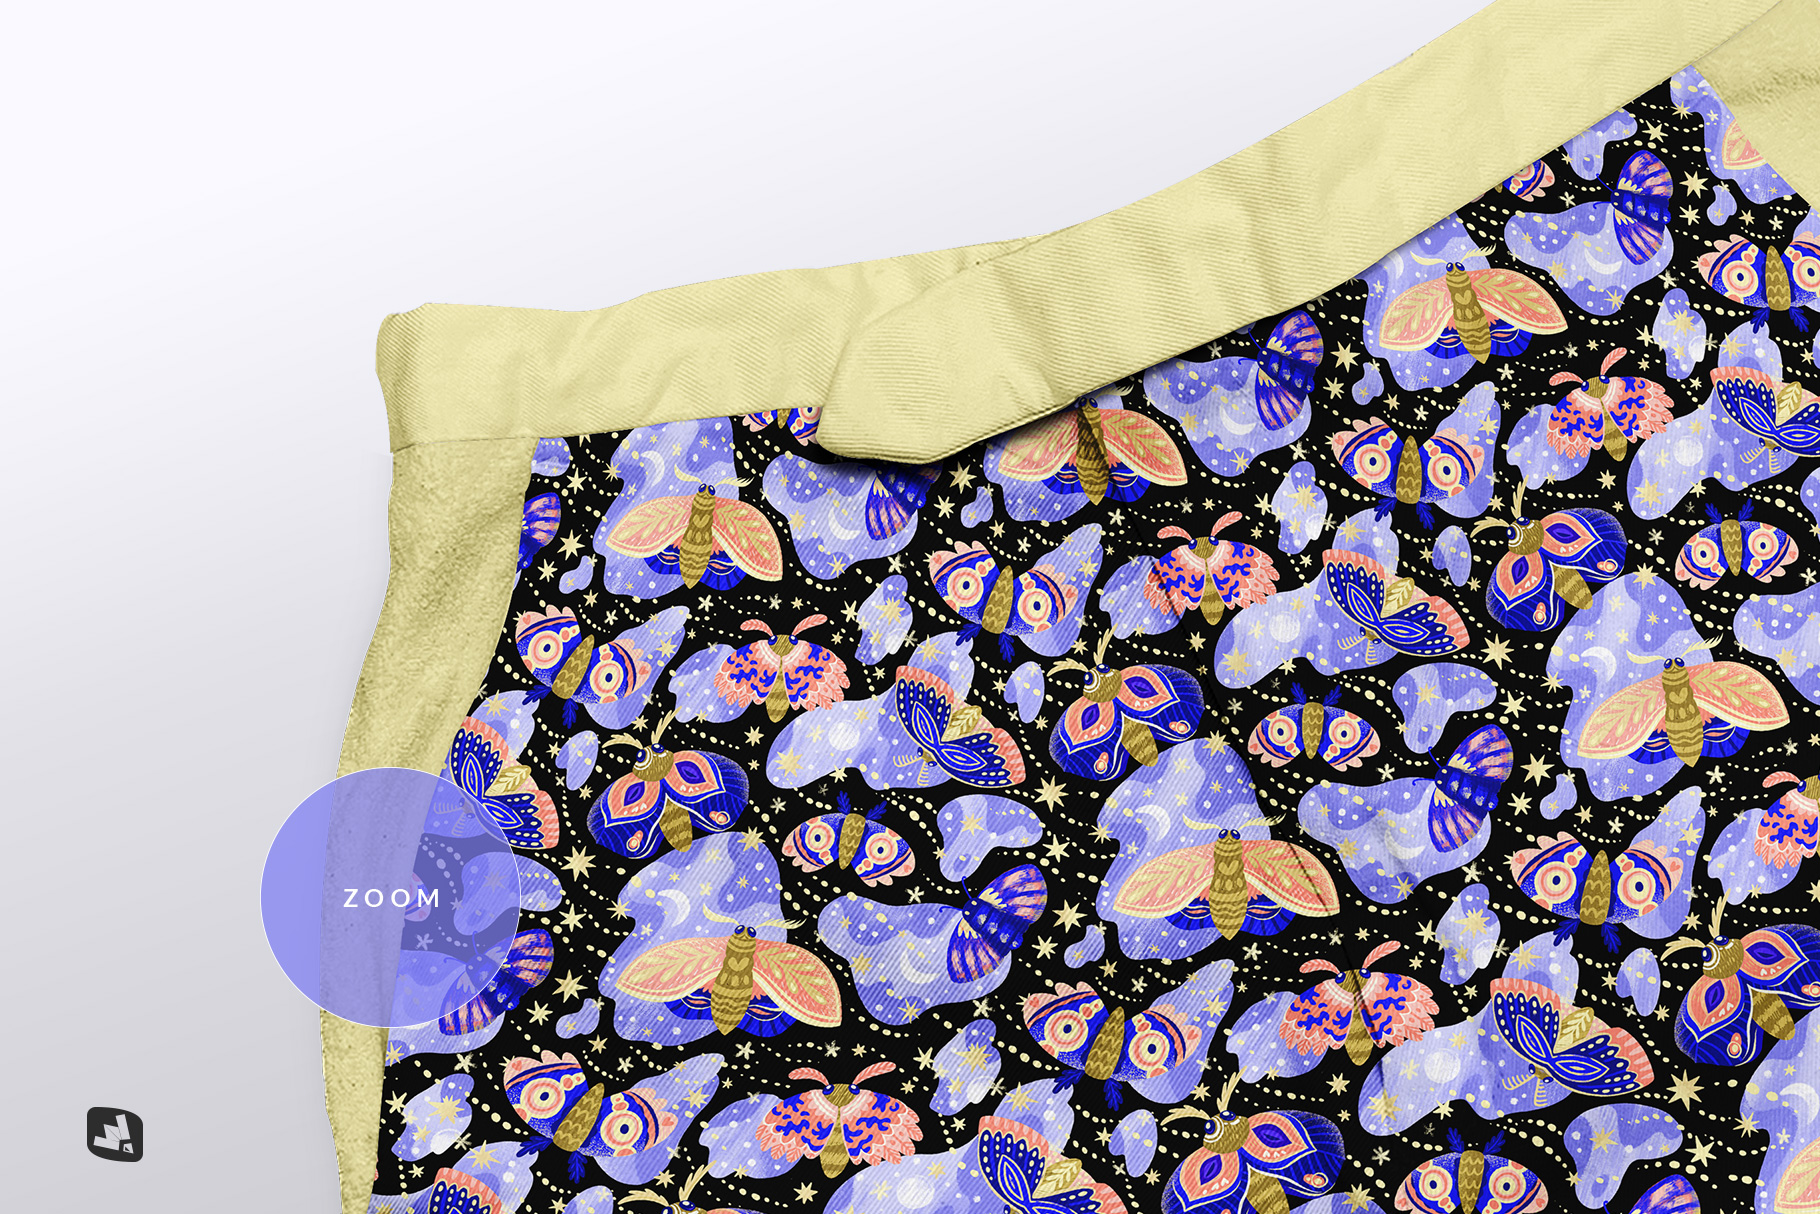 zoomed in image of the female cotton hot pants mockup